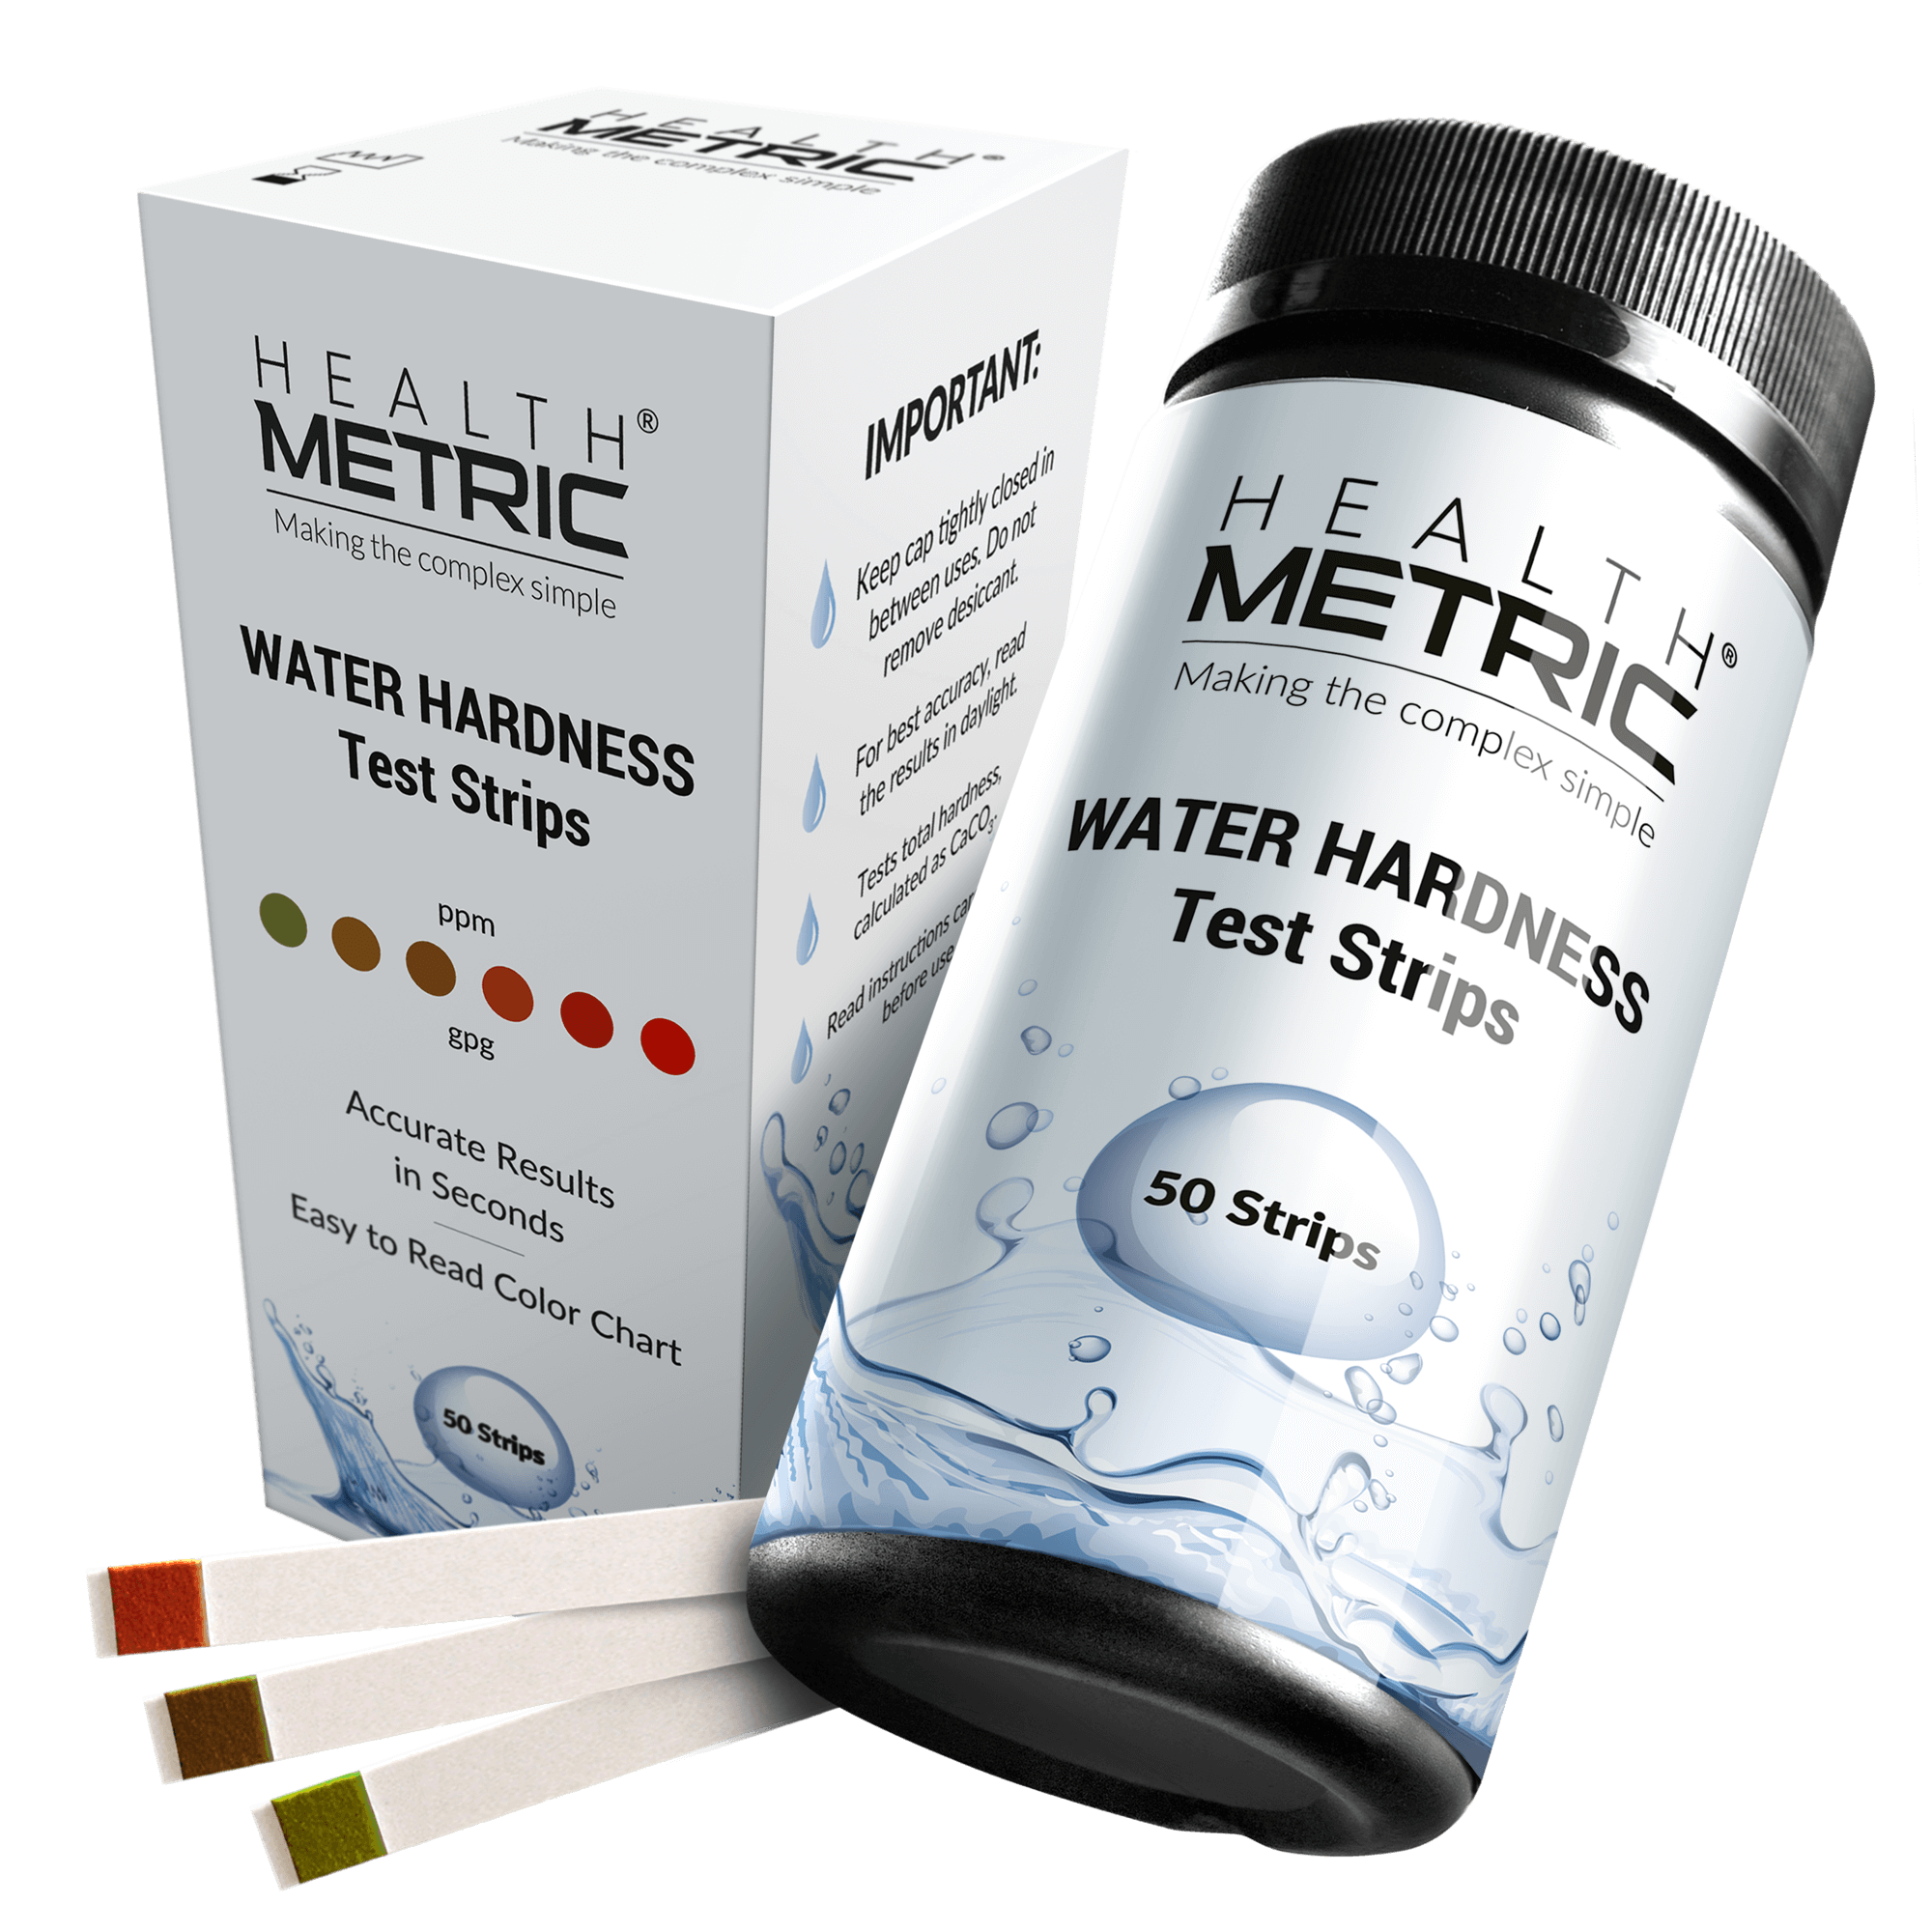 Water Hardness Test Strips - 50 strips at 0-425 ppm